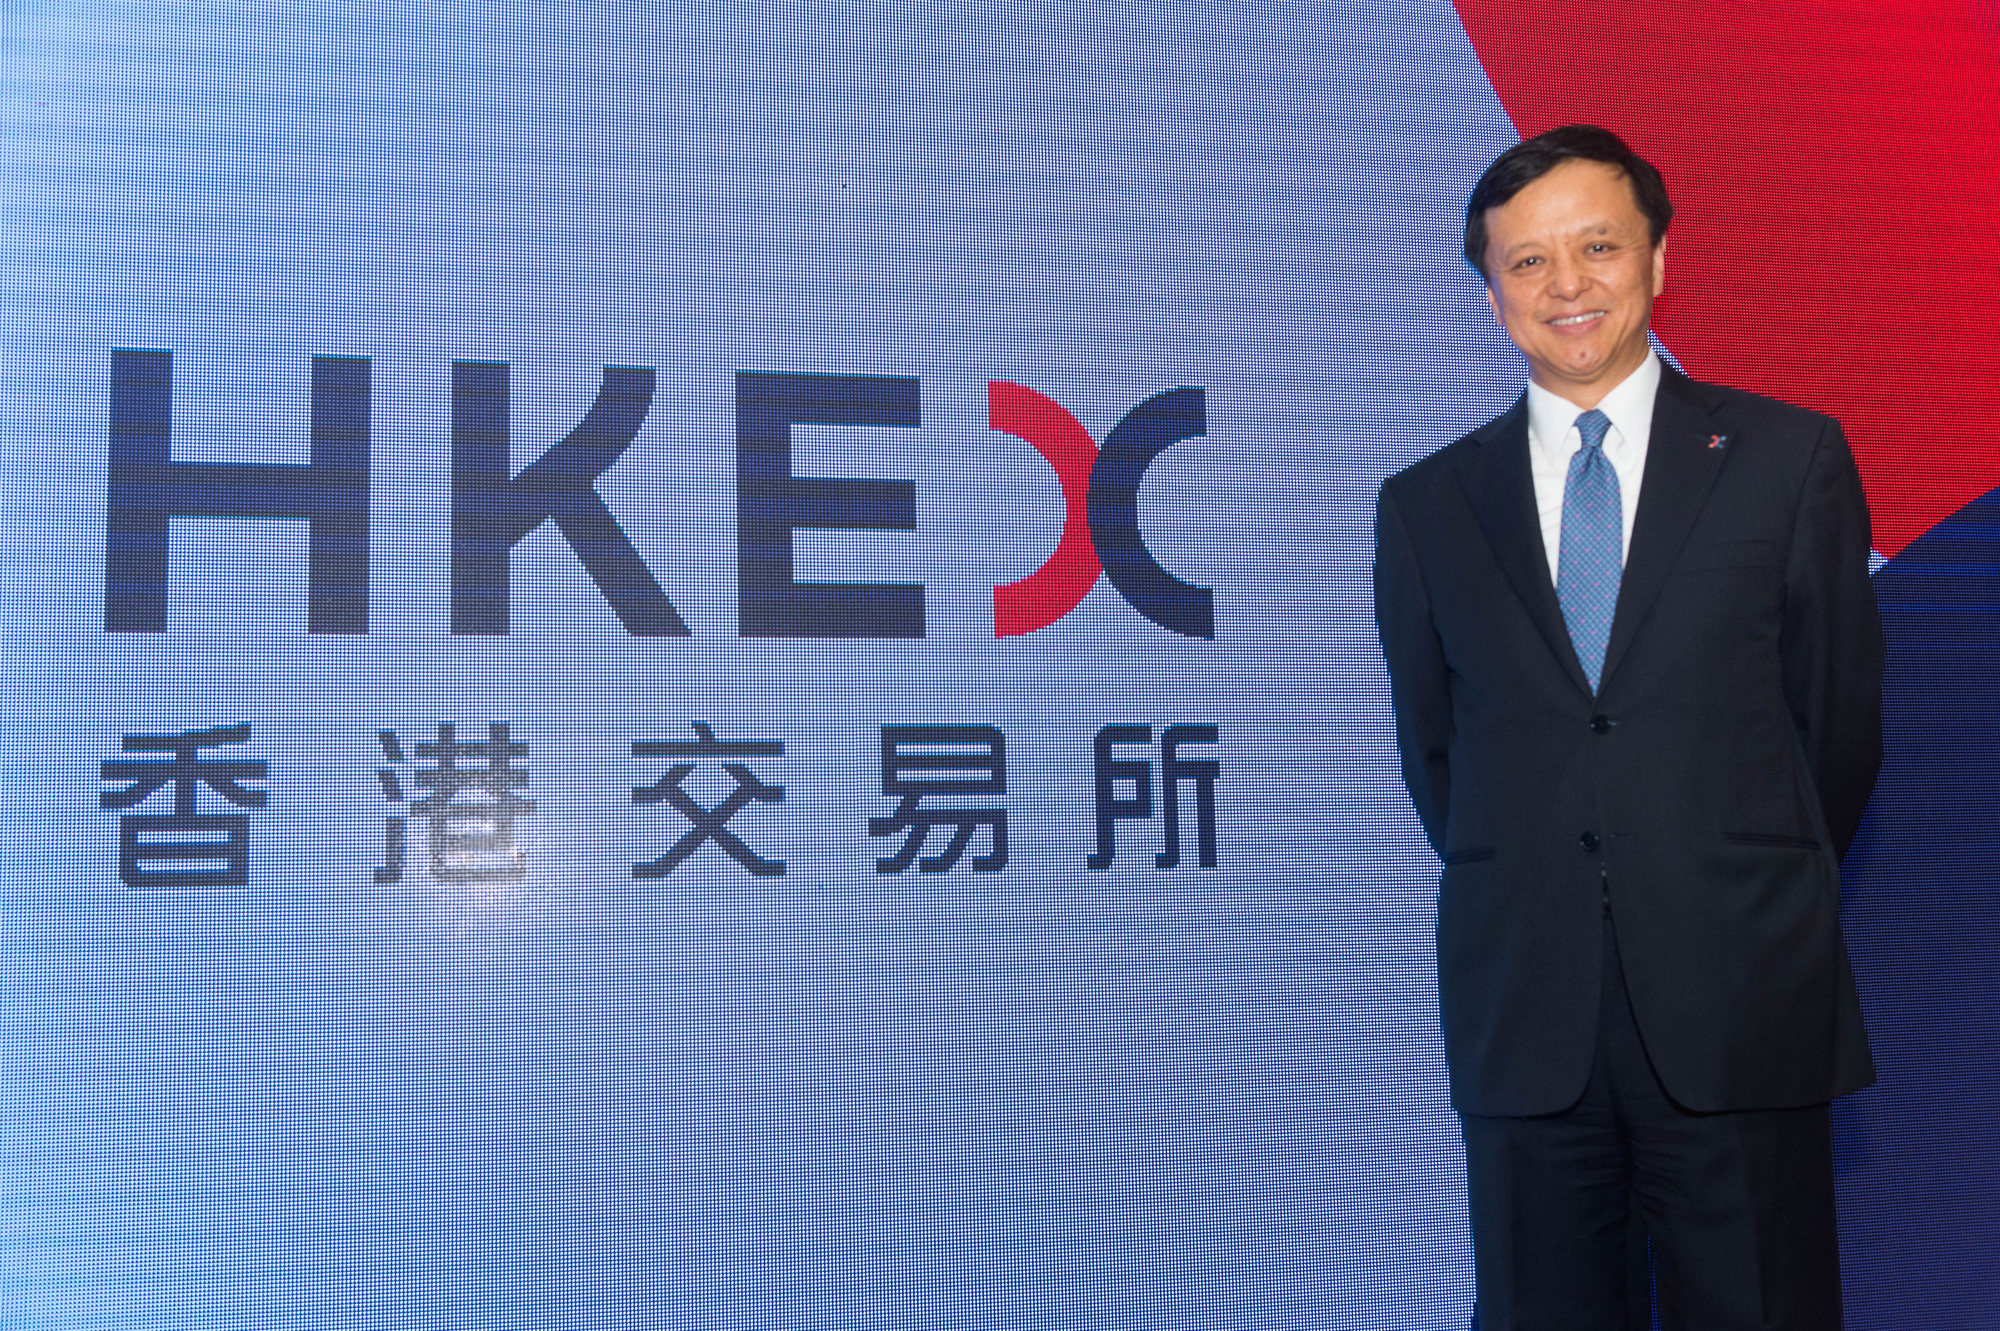 Chief Executive Charles li officially unveils HKEX's new logo. He says the new corporate identity aligns with the HKEX's newest Strategic Plan 2016-2018, which details its plans to connect China with the world.